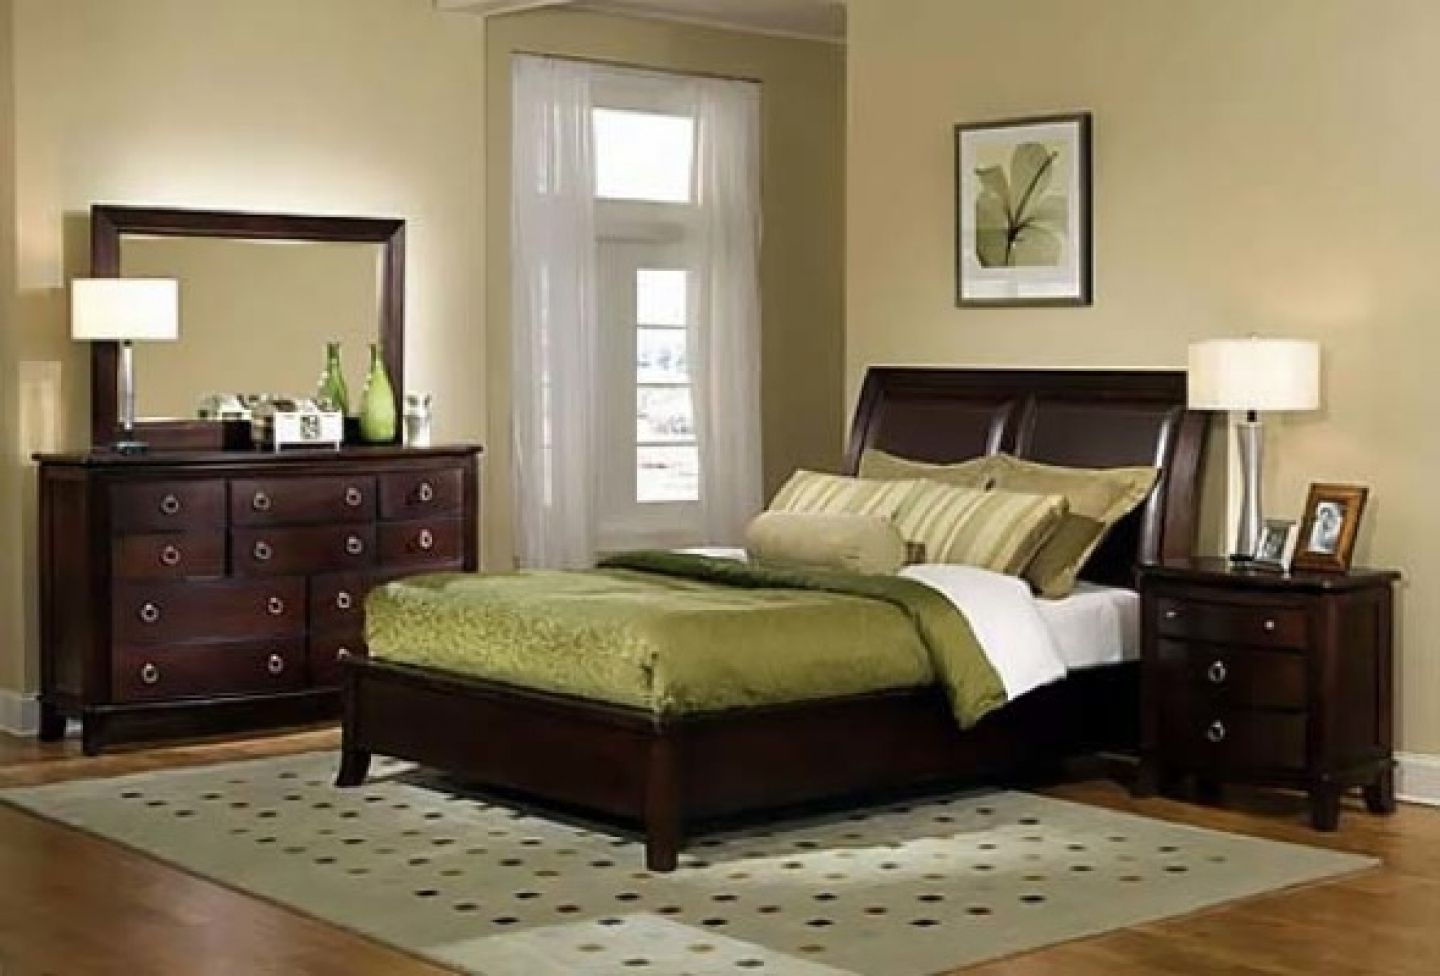 Popular Neutral Paint Colors Bedroom Ideas Bedroom Paint Colors Master Master Bedroom Colors Remodel Bedroom